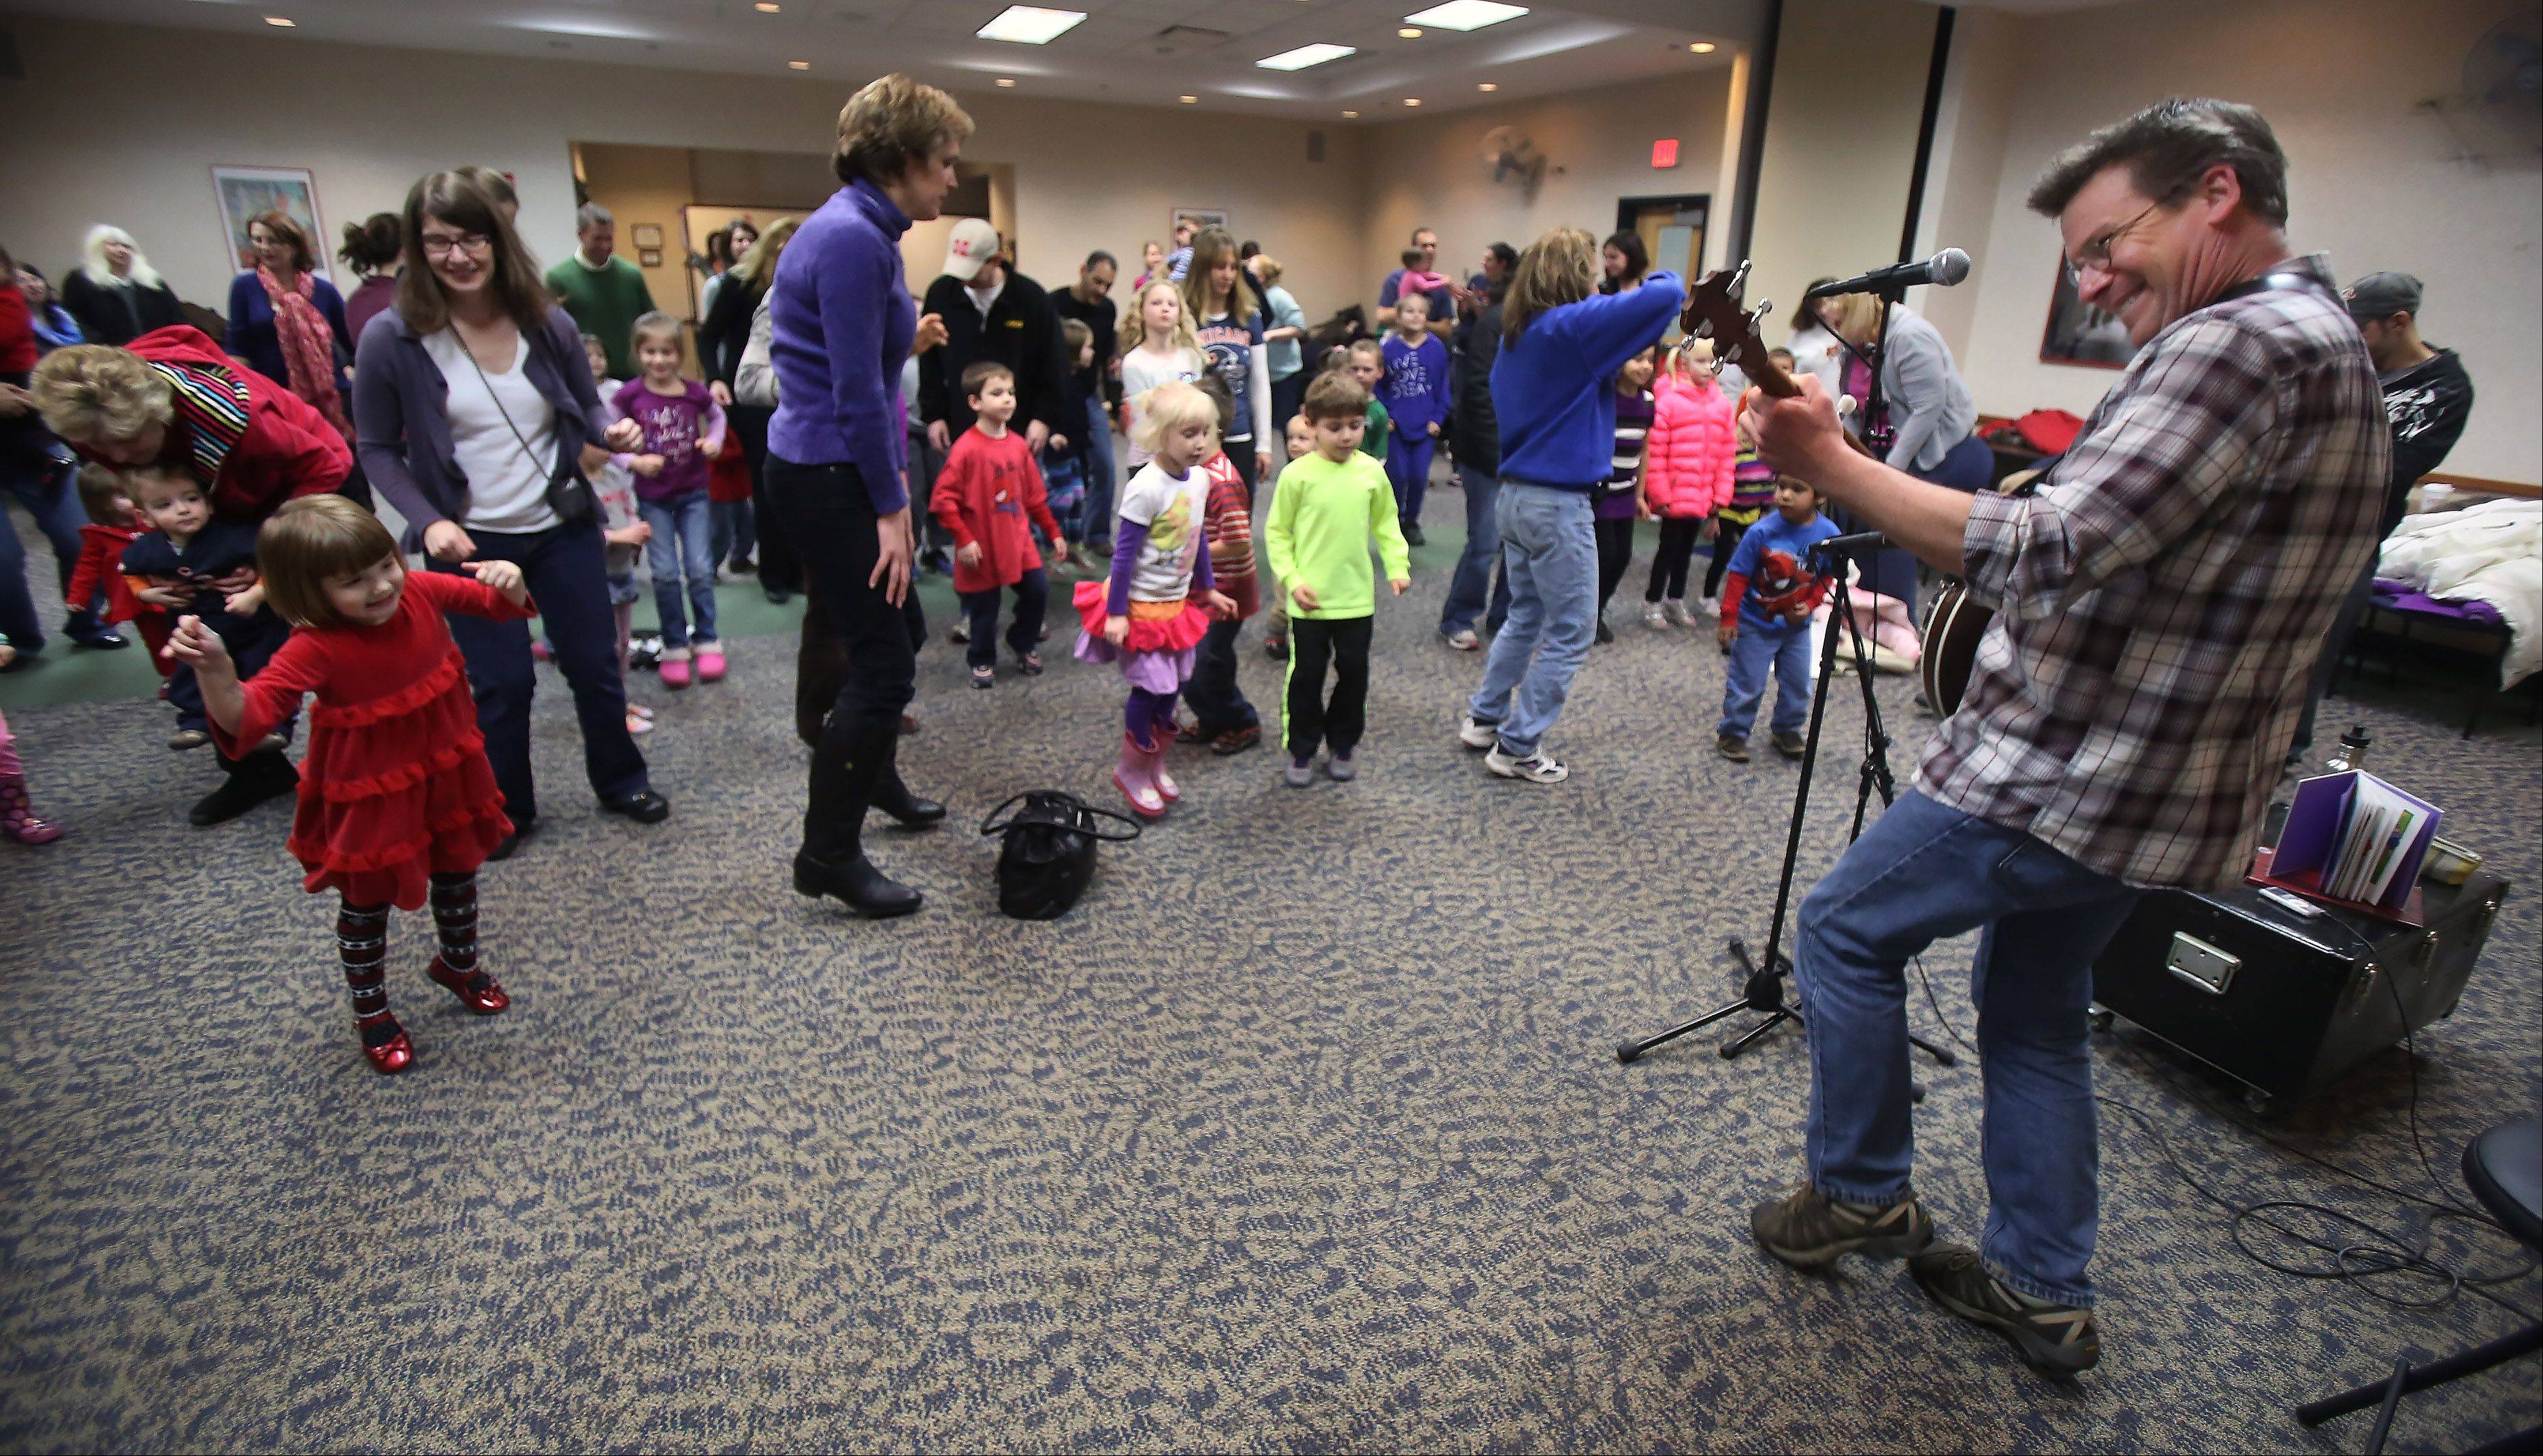 Musician Jim Gill entertained families during a �Sing in the New Year� concert Sunday at Fremont Public Library in Mundelein. An audience of about 100 clapped, danced and sang to the music of Gill as he played his banjo.